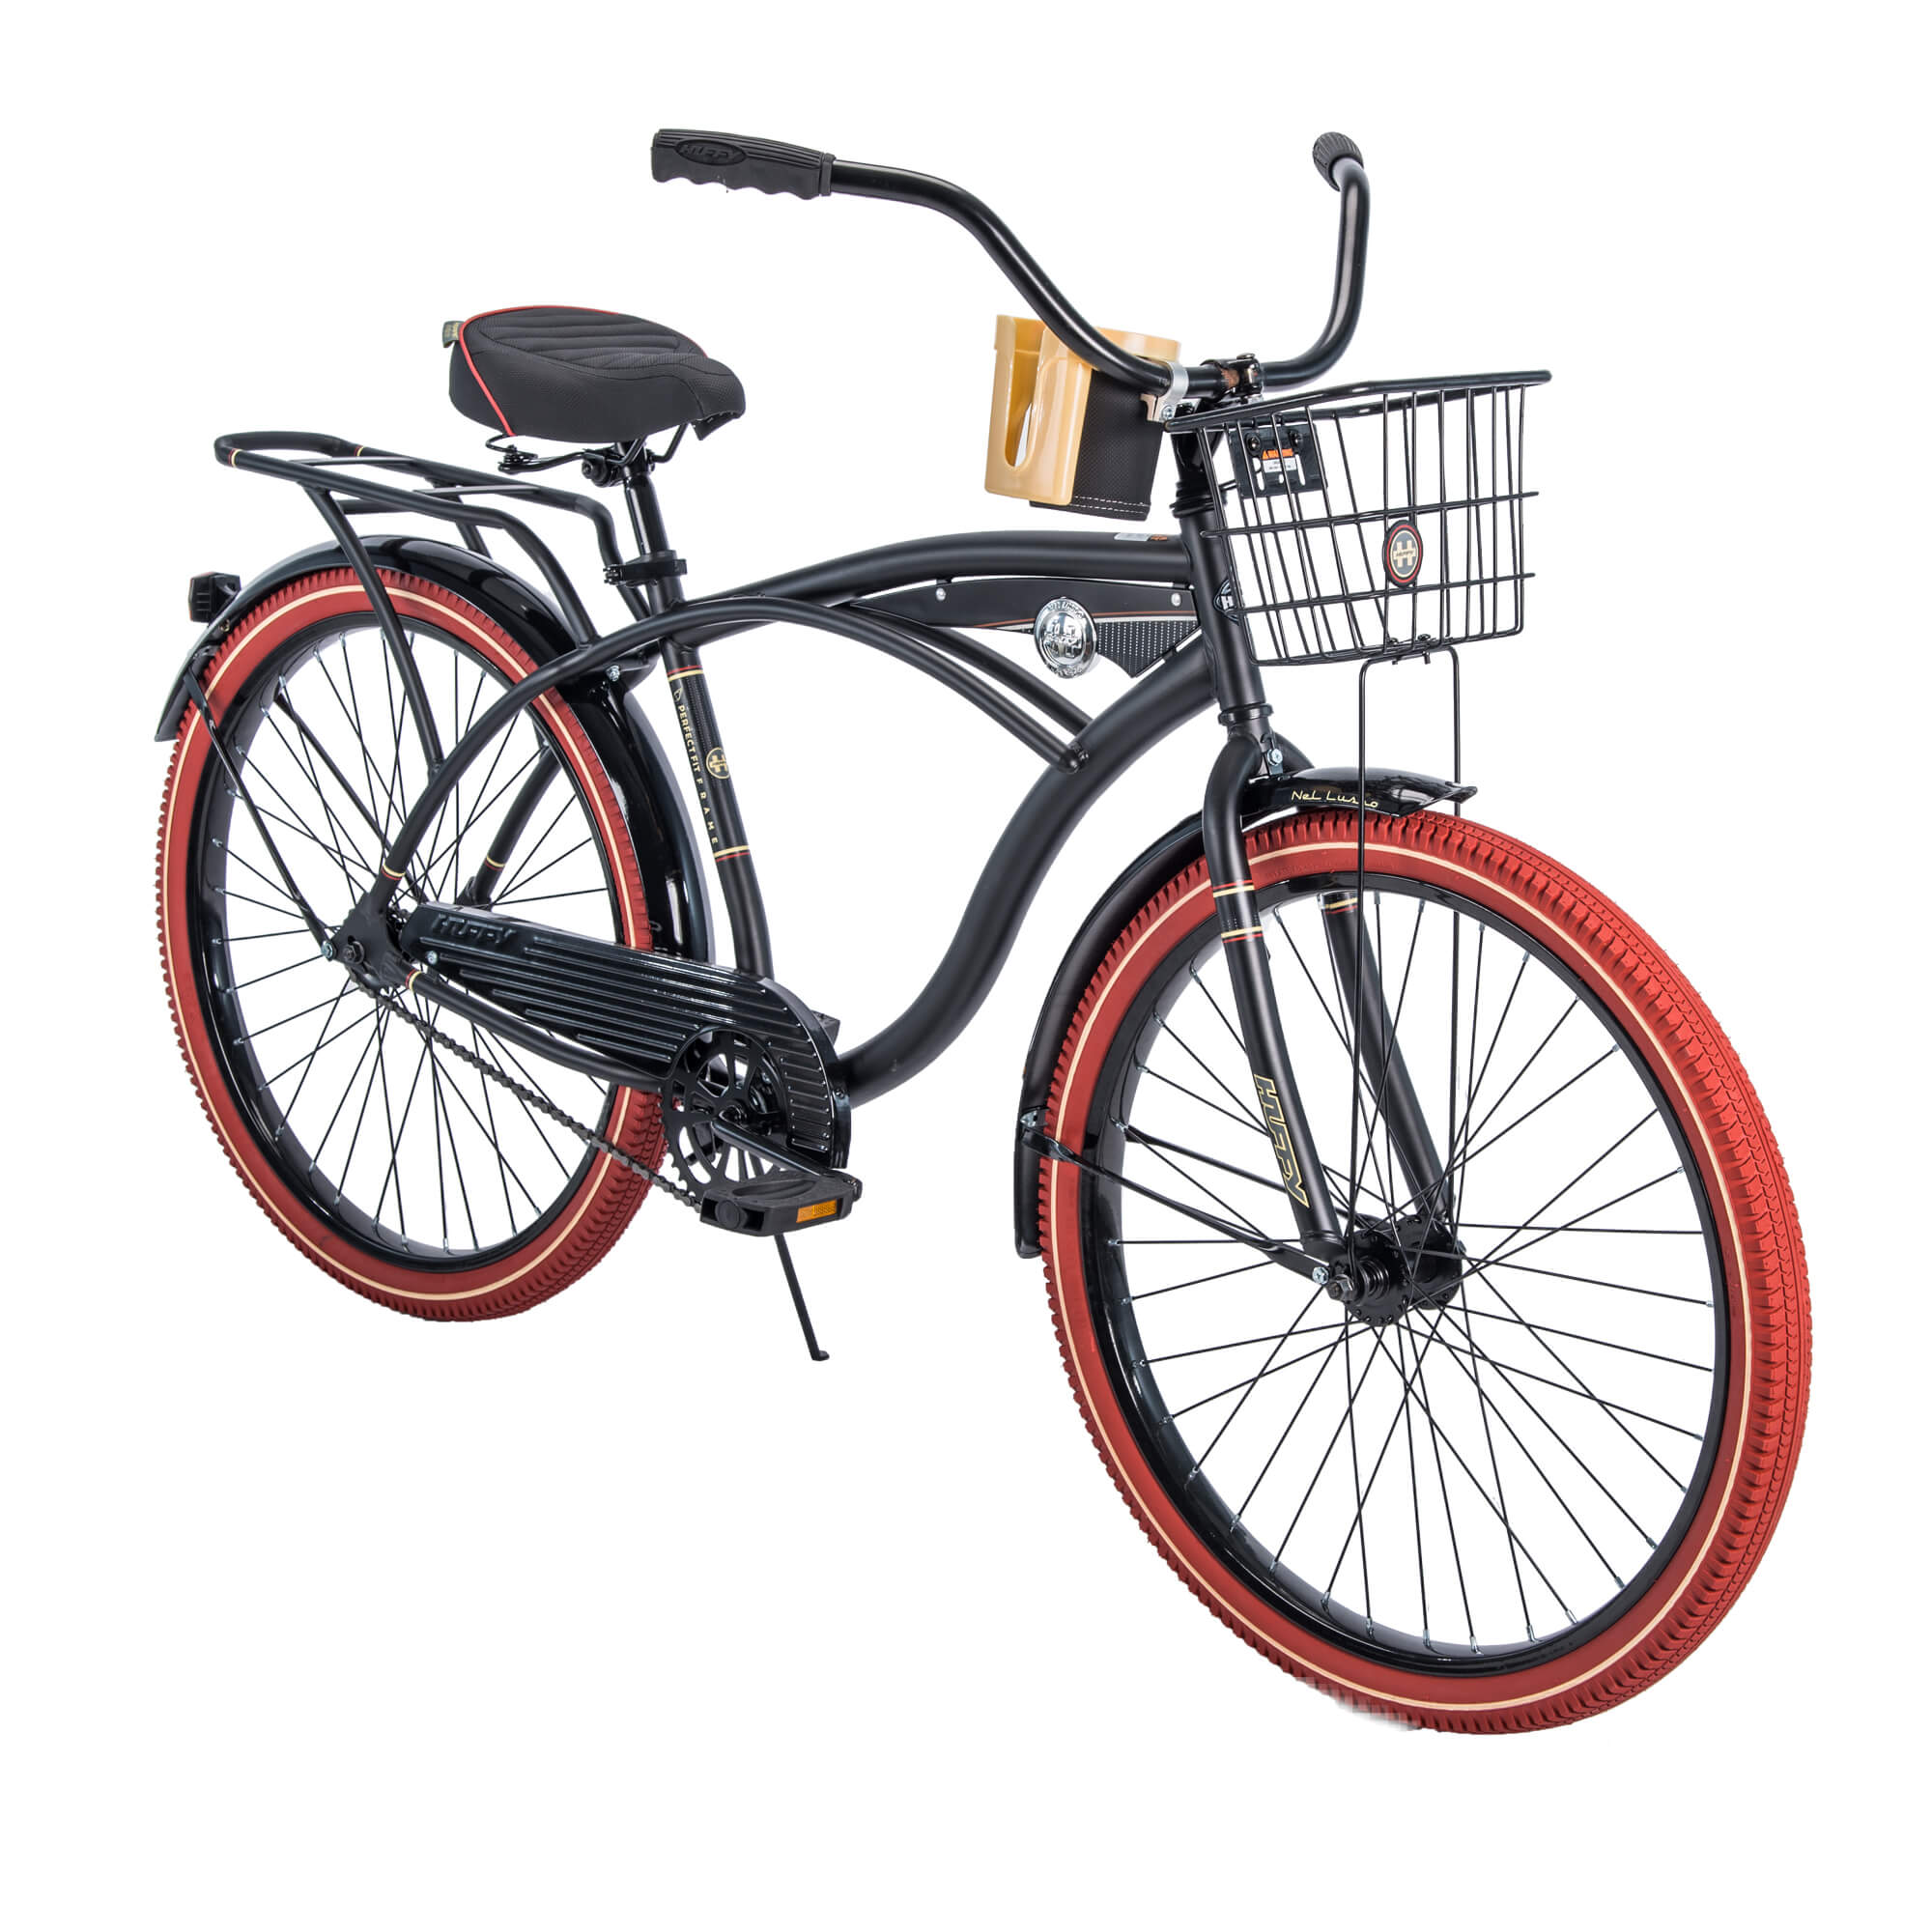 "Huffy 26"" Men's Nel Lusso Cruiser with Perfect Fit Frame Bike, Black by Huffy"